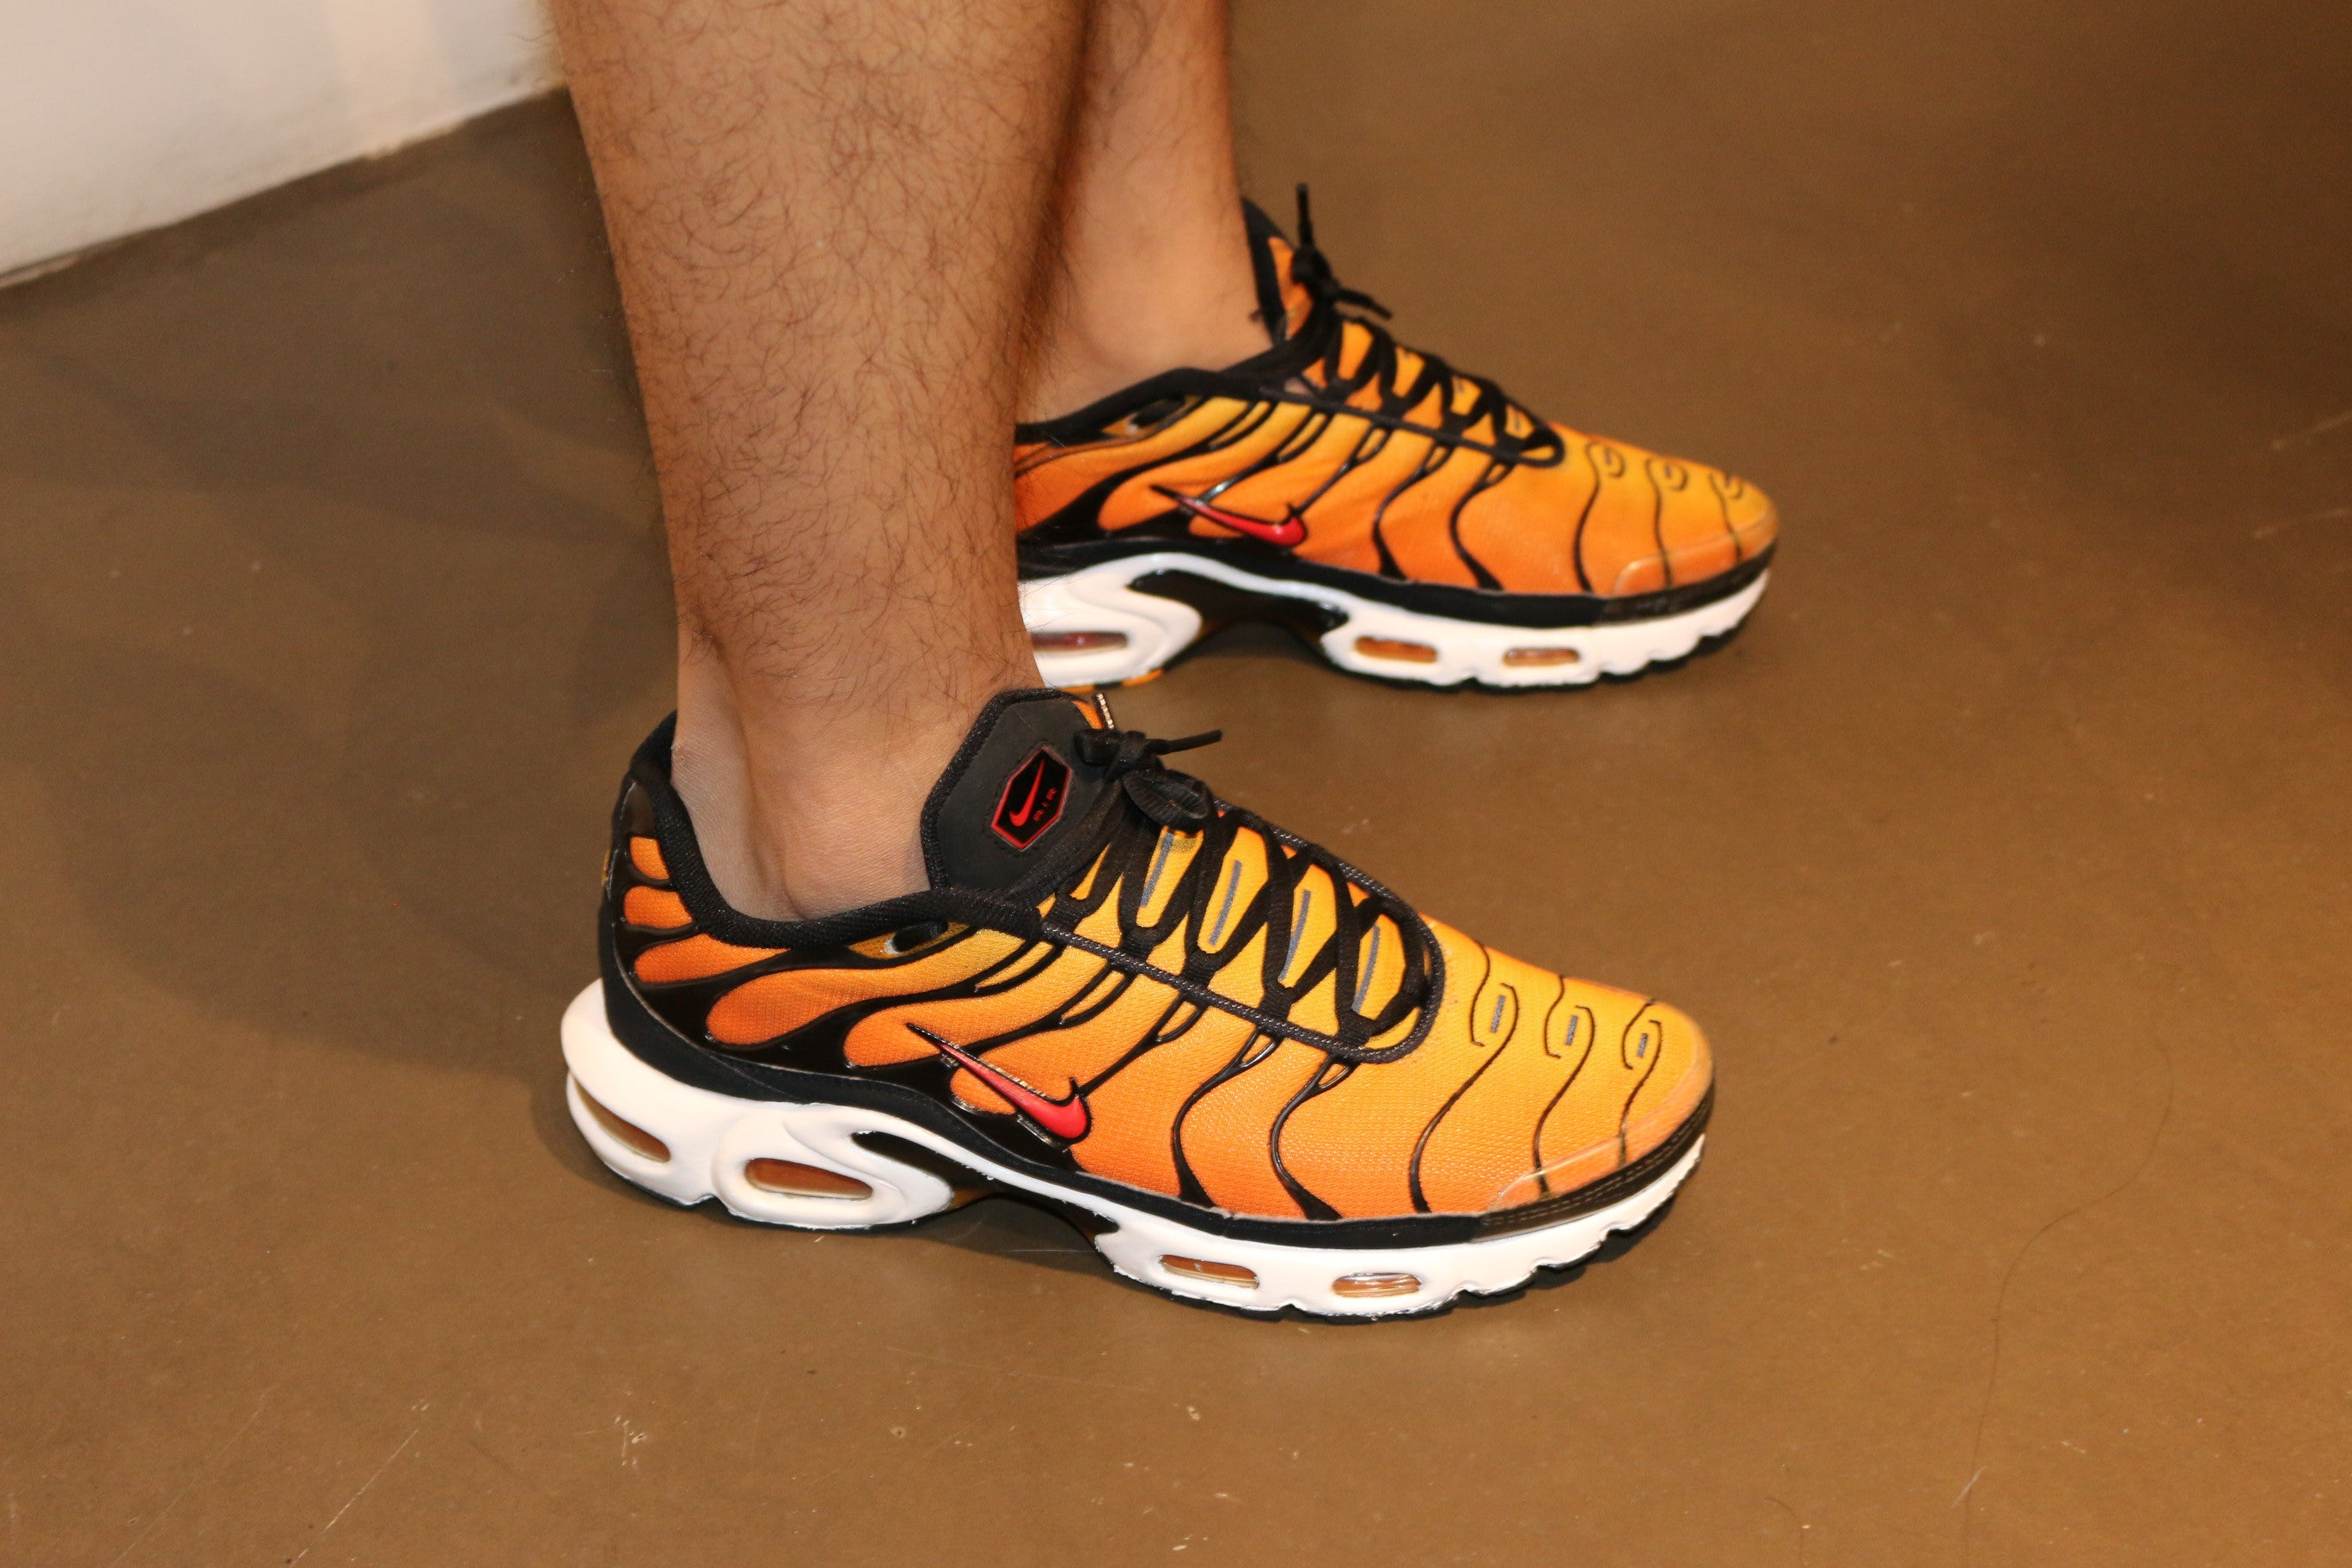 d808aa55d6b AIR MAX DAY AT BUTTER  CHECK OUT THE BEST KICKS WORN – Butter